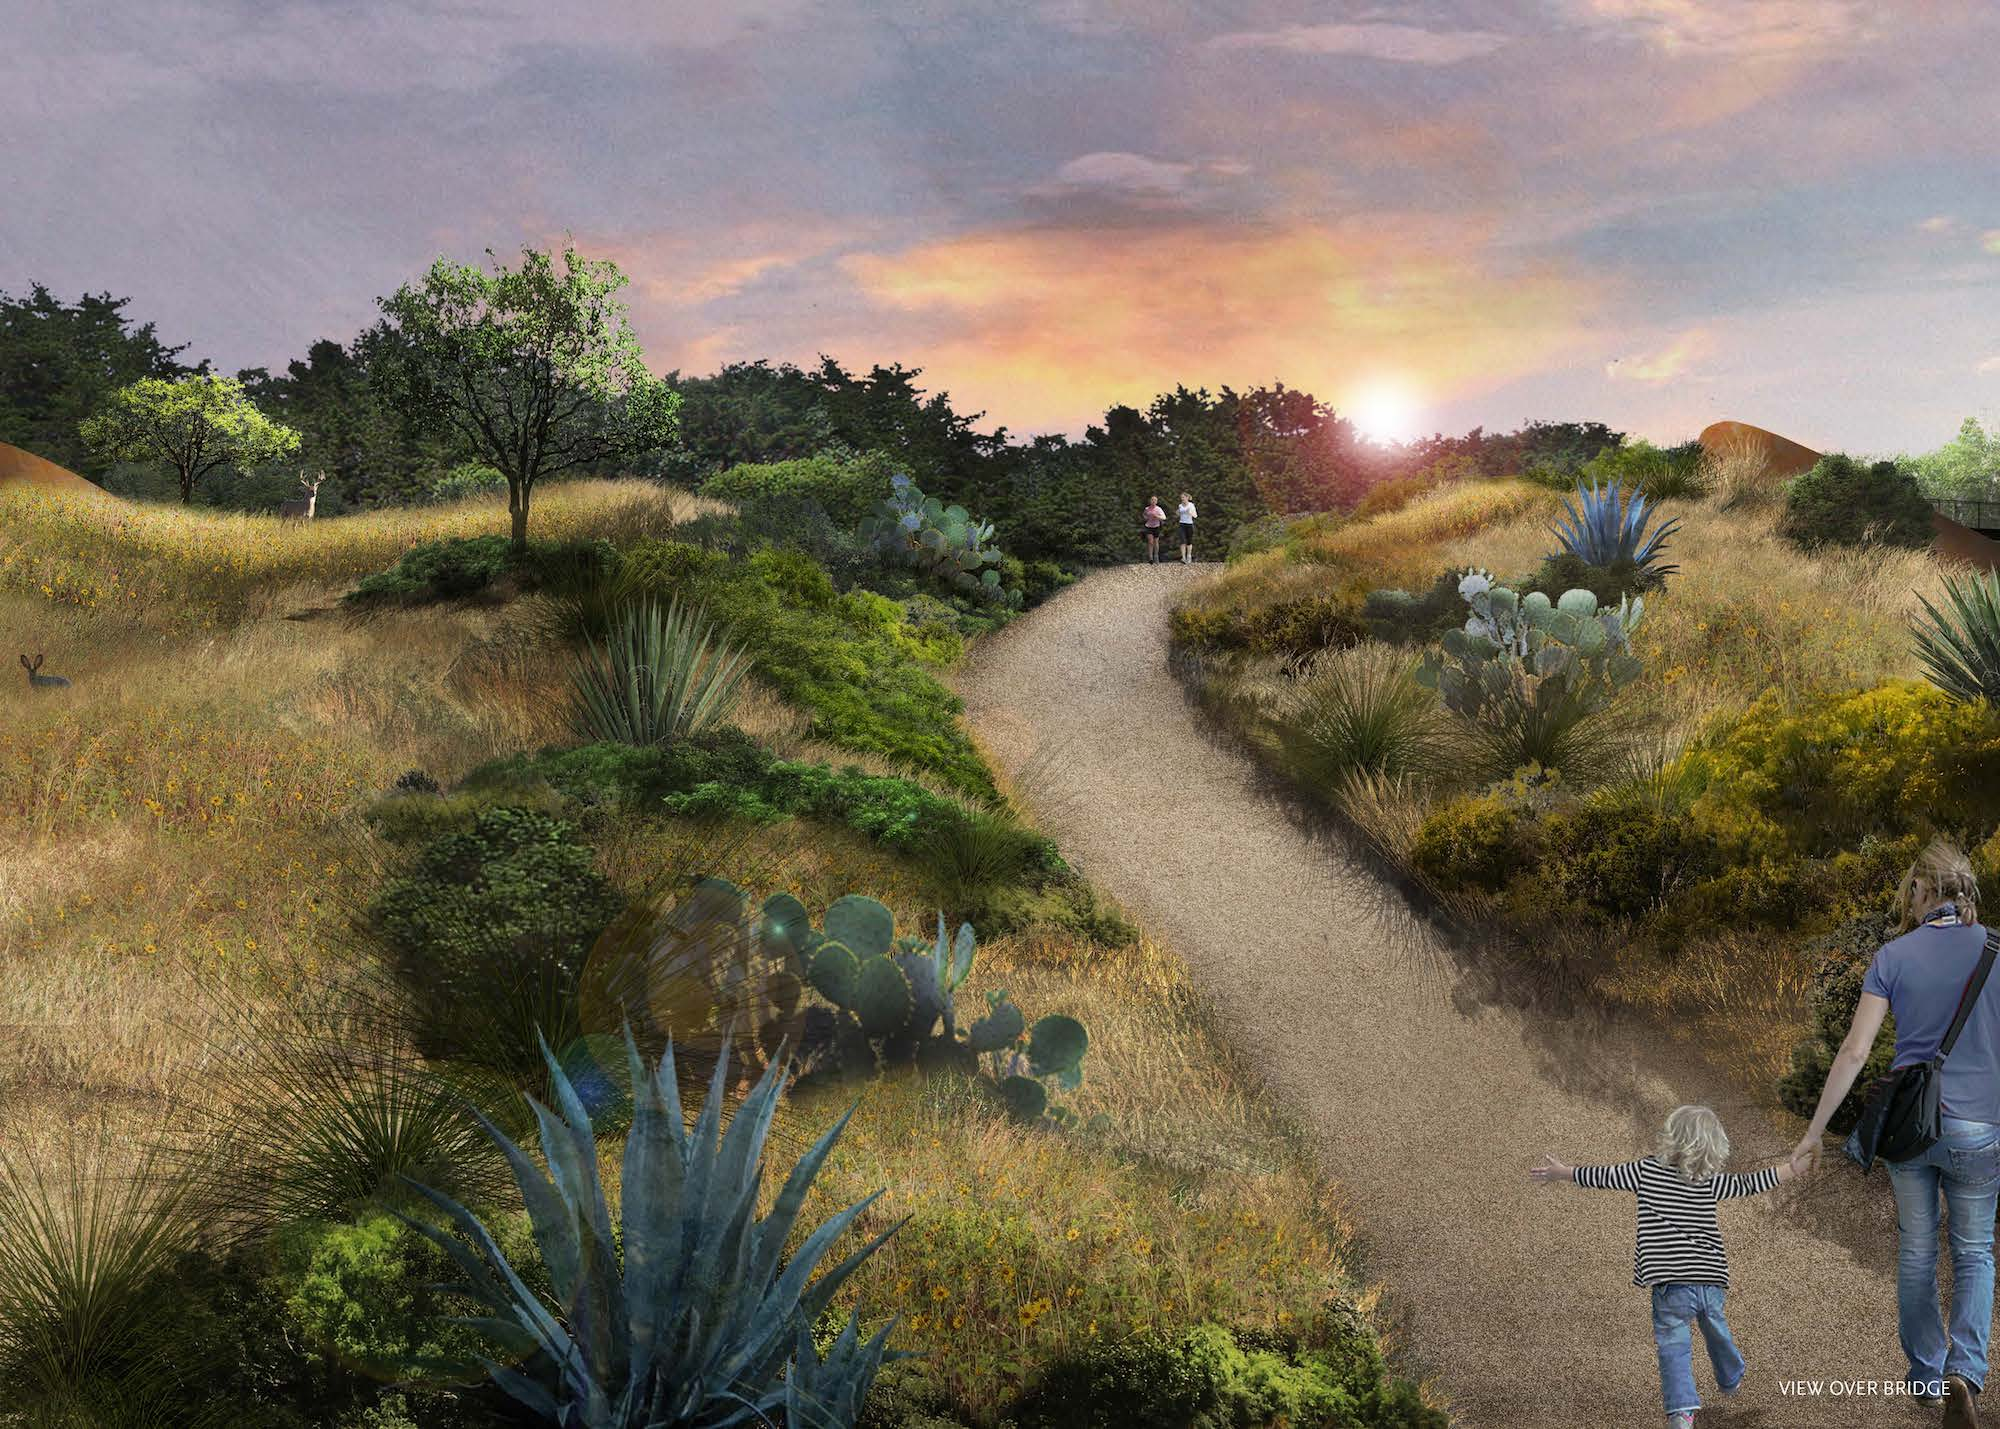 The $23 million land bridge at Phil Hardberger Park will provide save crossing for people and animals.